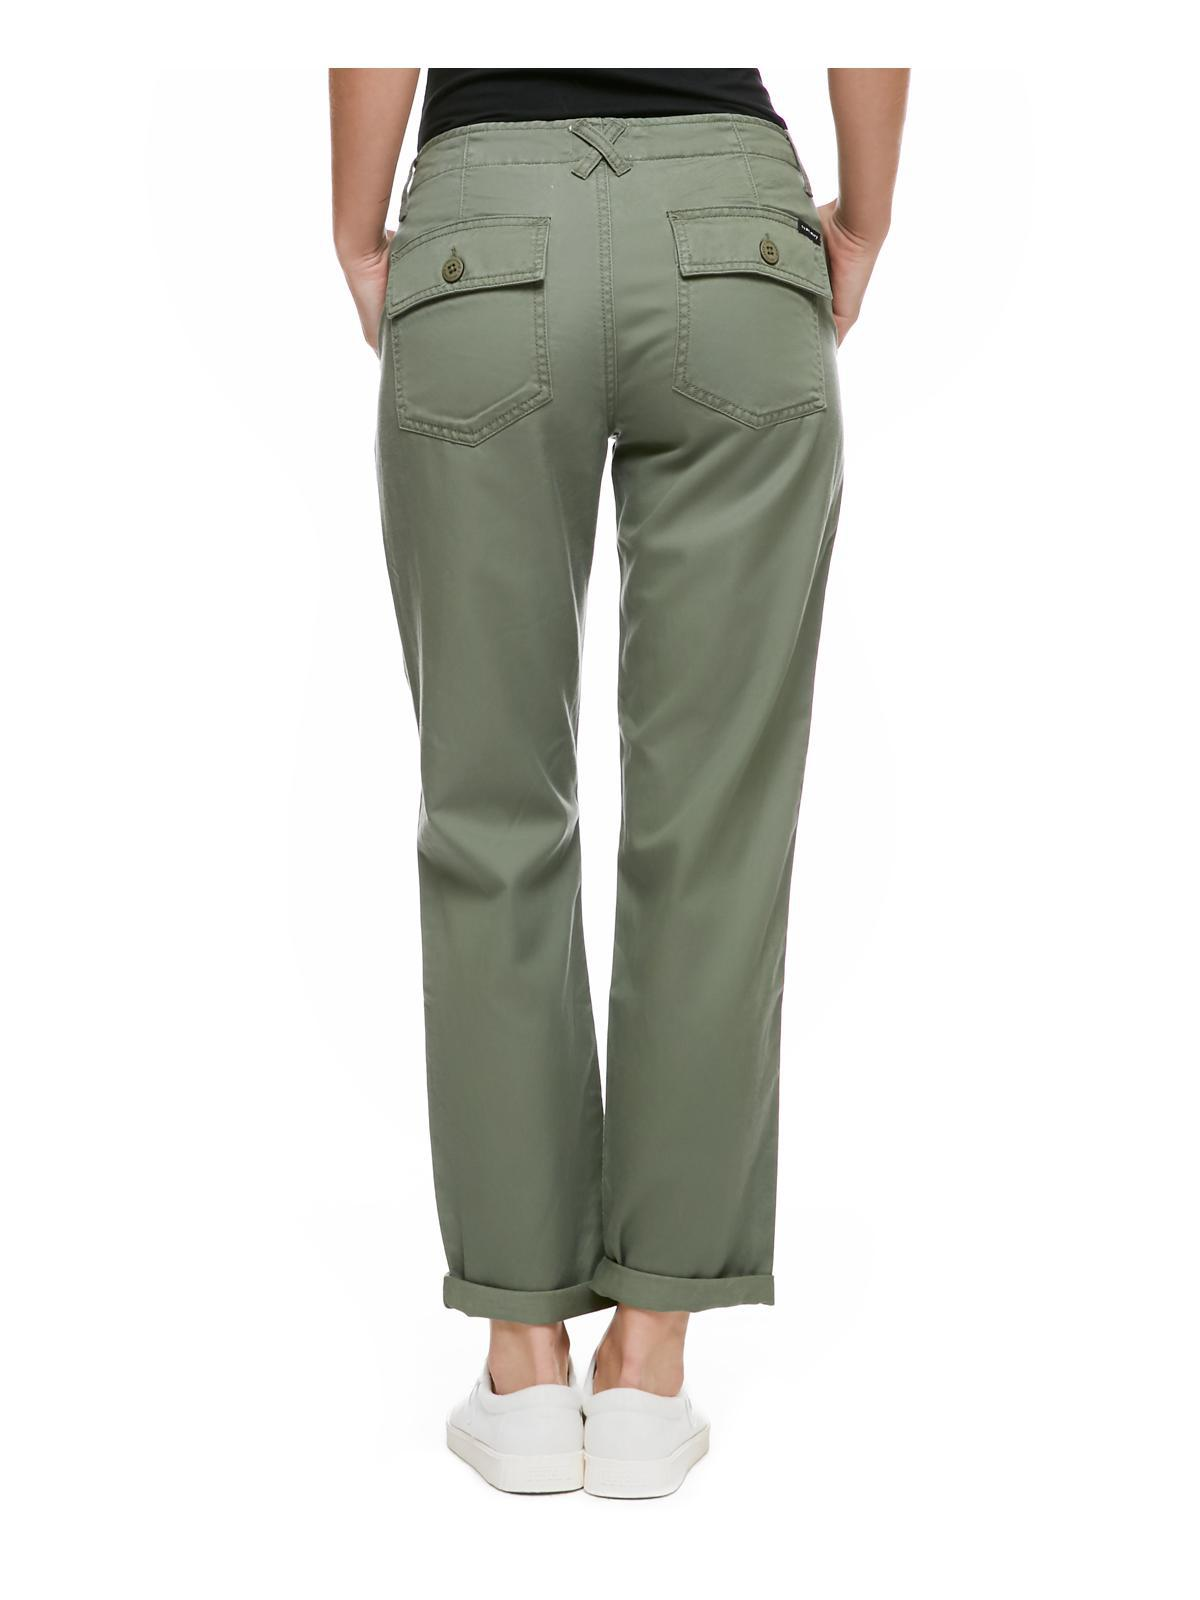 25dad7d7c5fbc Gallery. Previously sold at  Sanctuary Clothing · Women s Stretch Pants ...